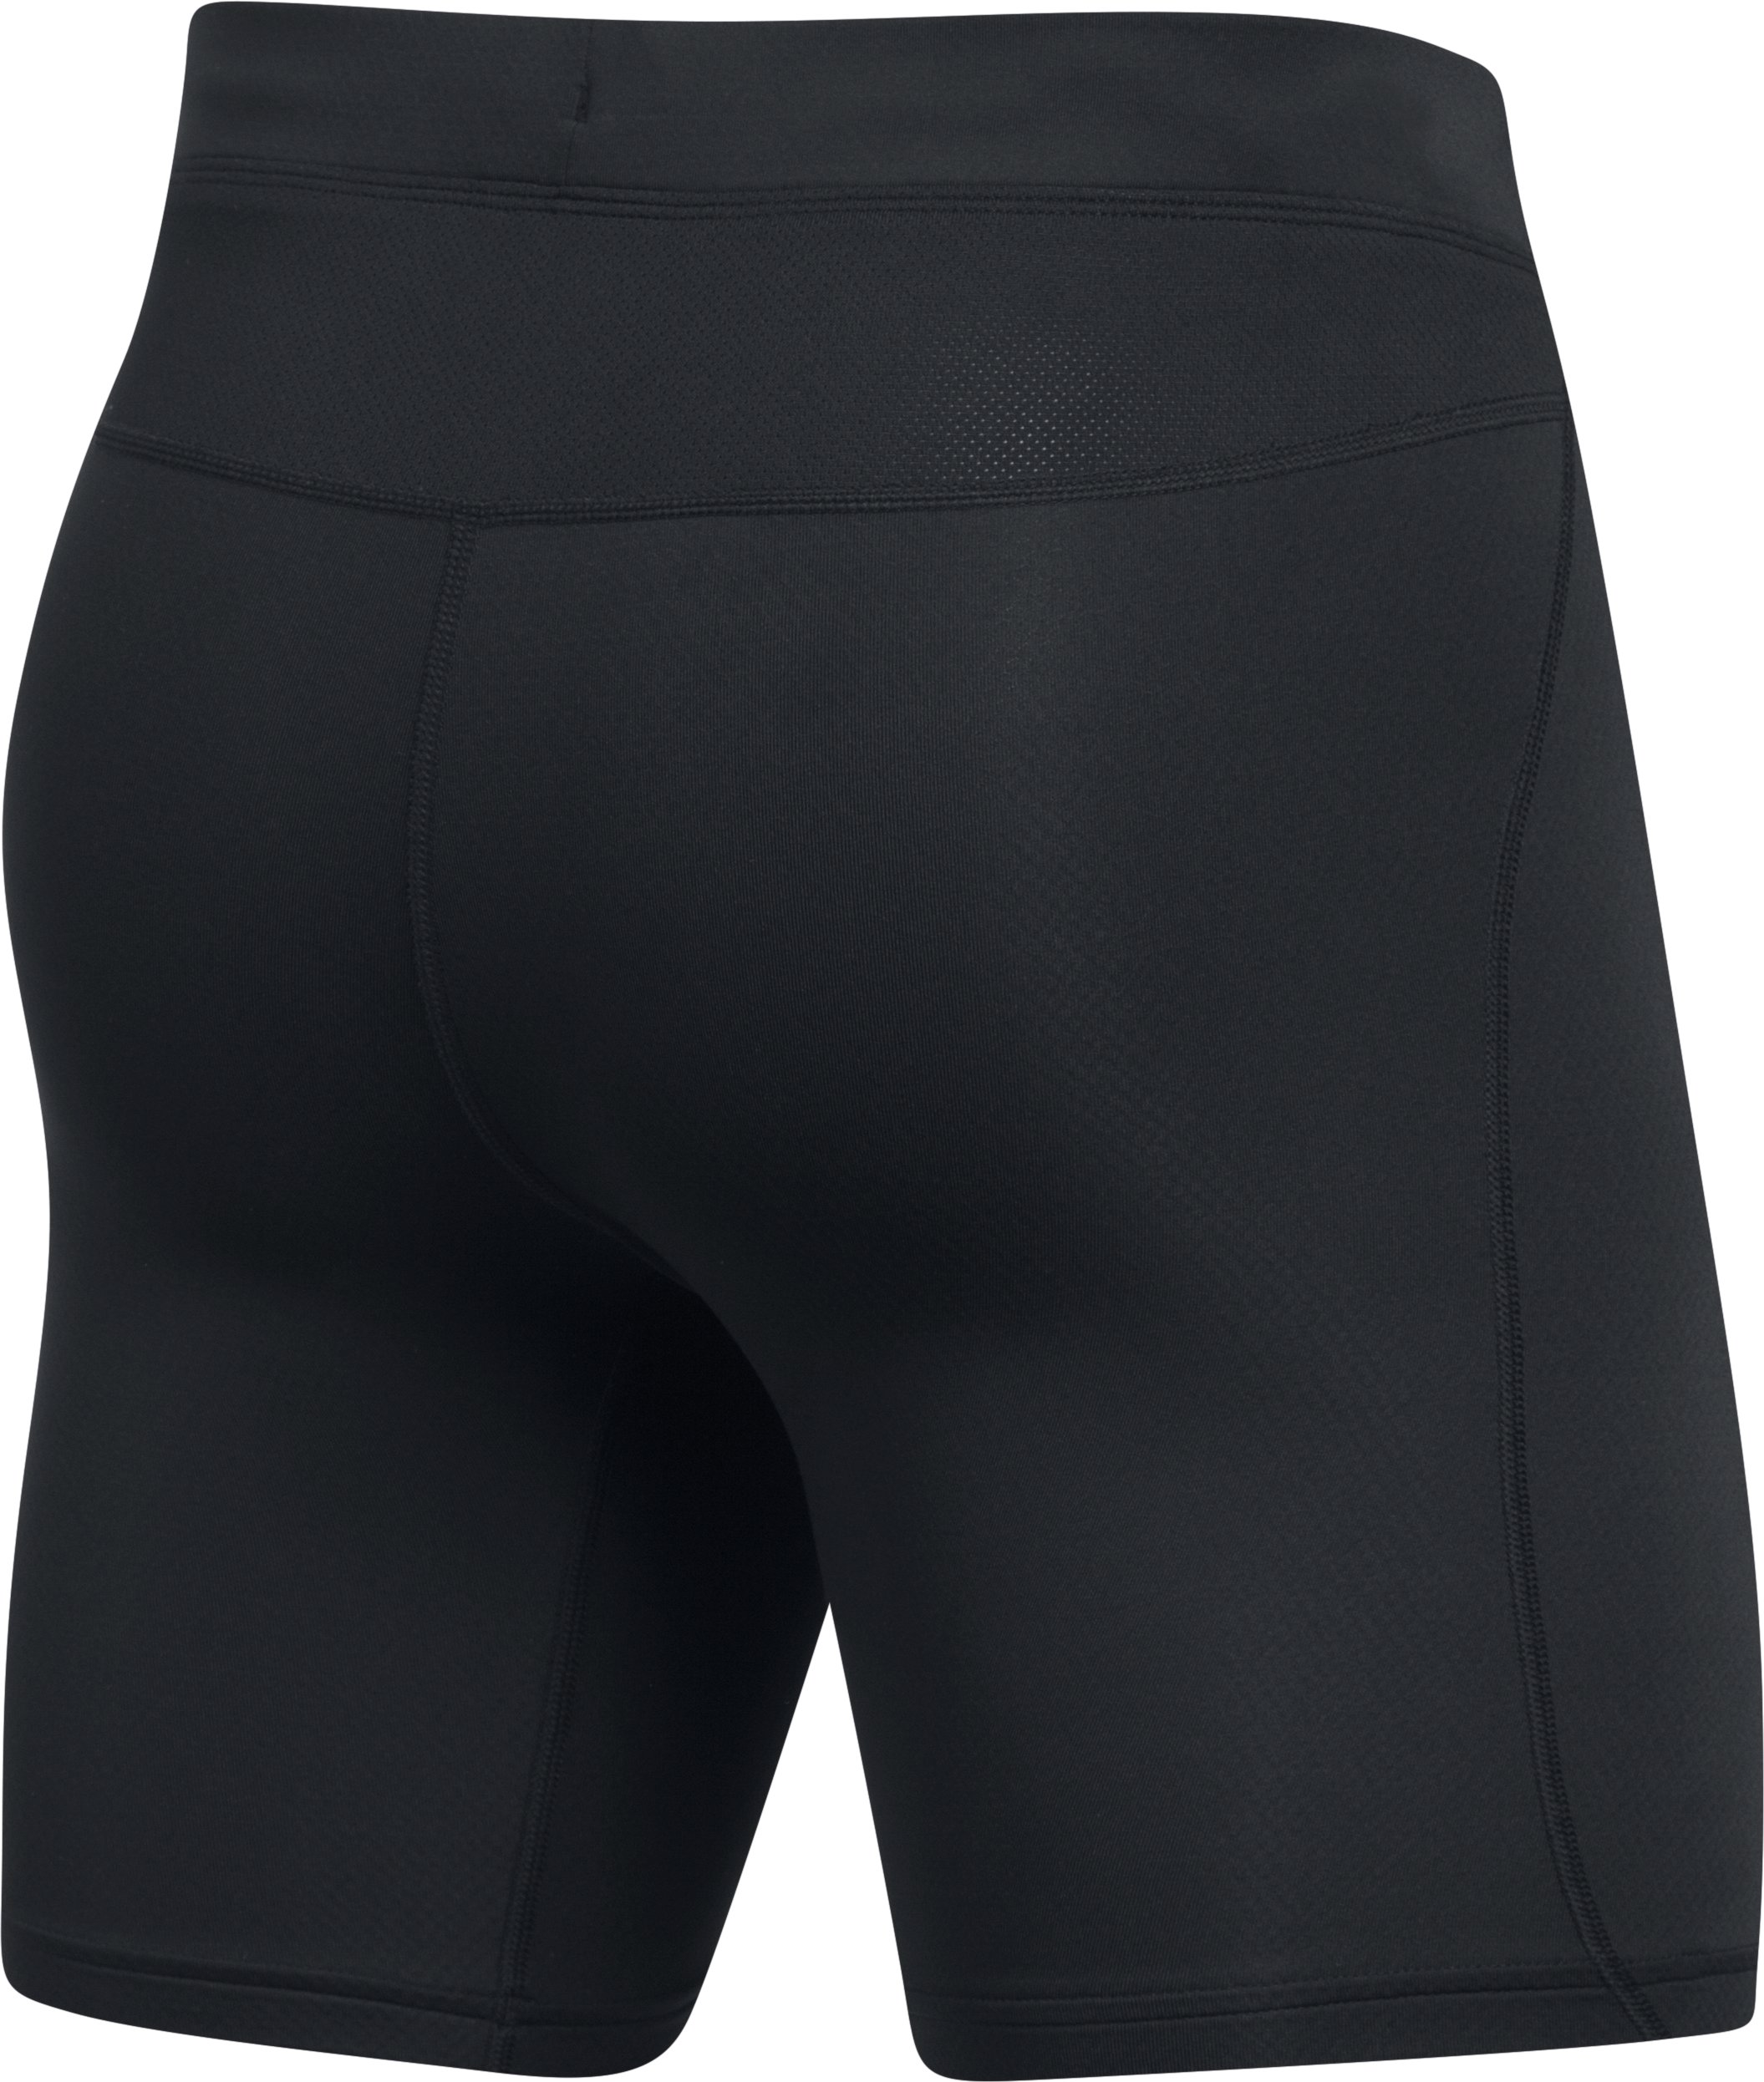 Men's ColdGear® Reactor, Black ,